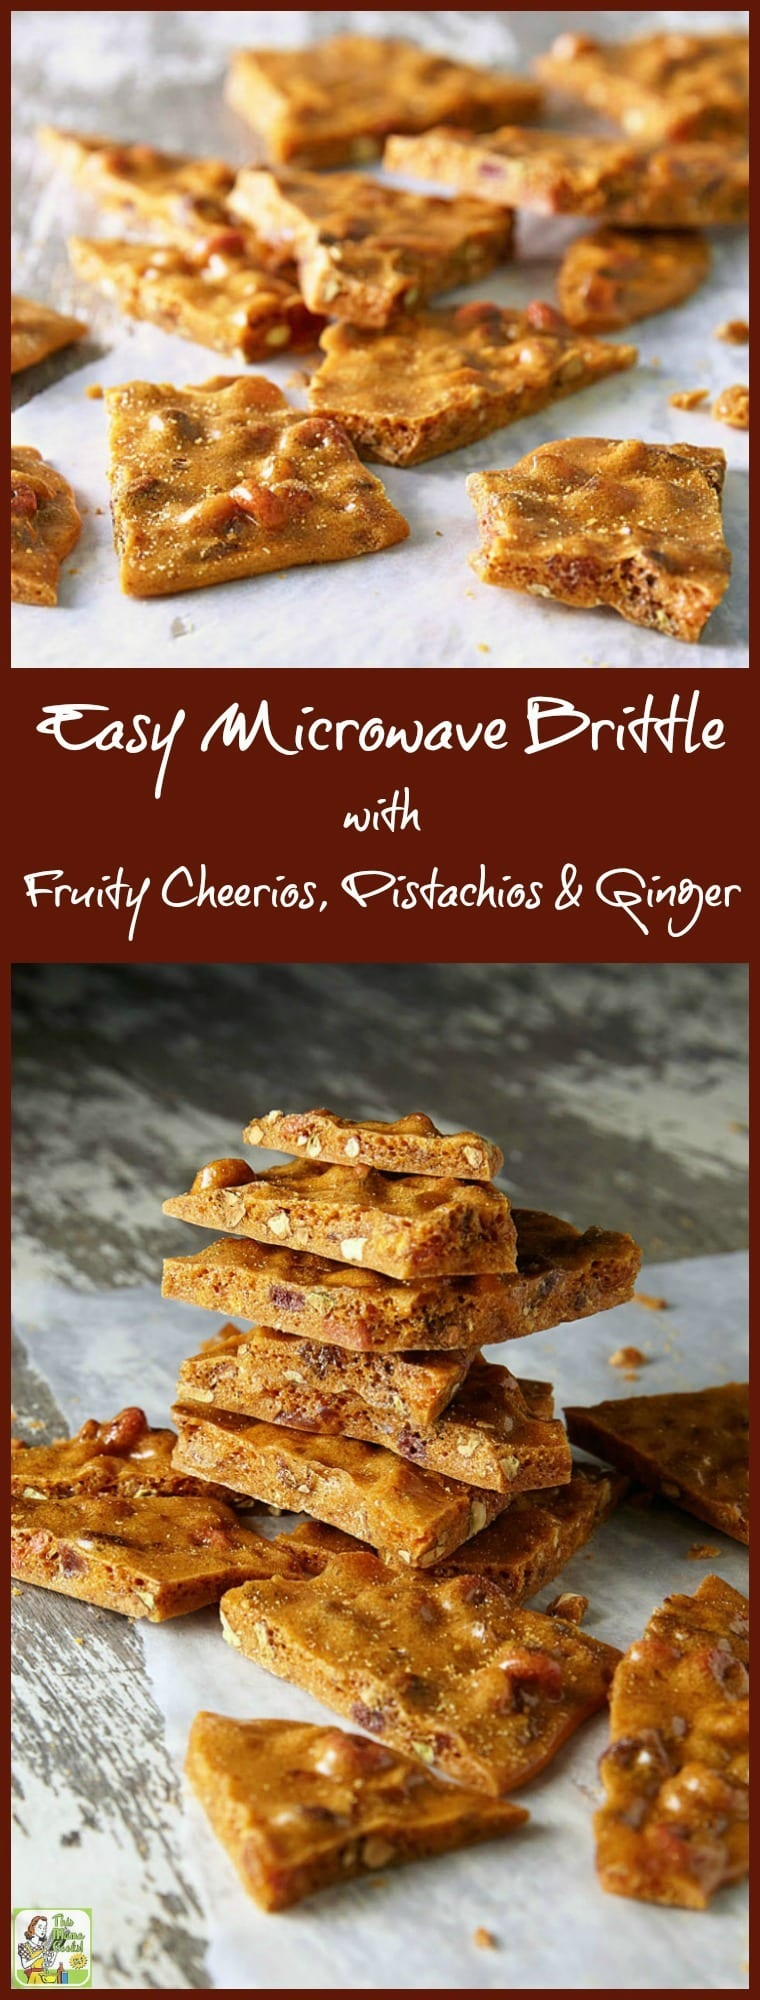 How To Make Easy Microwave Brittle As A Homemade Holiday Gift